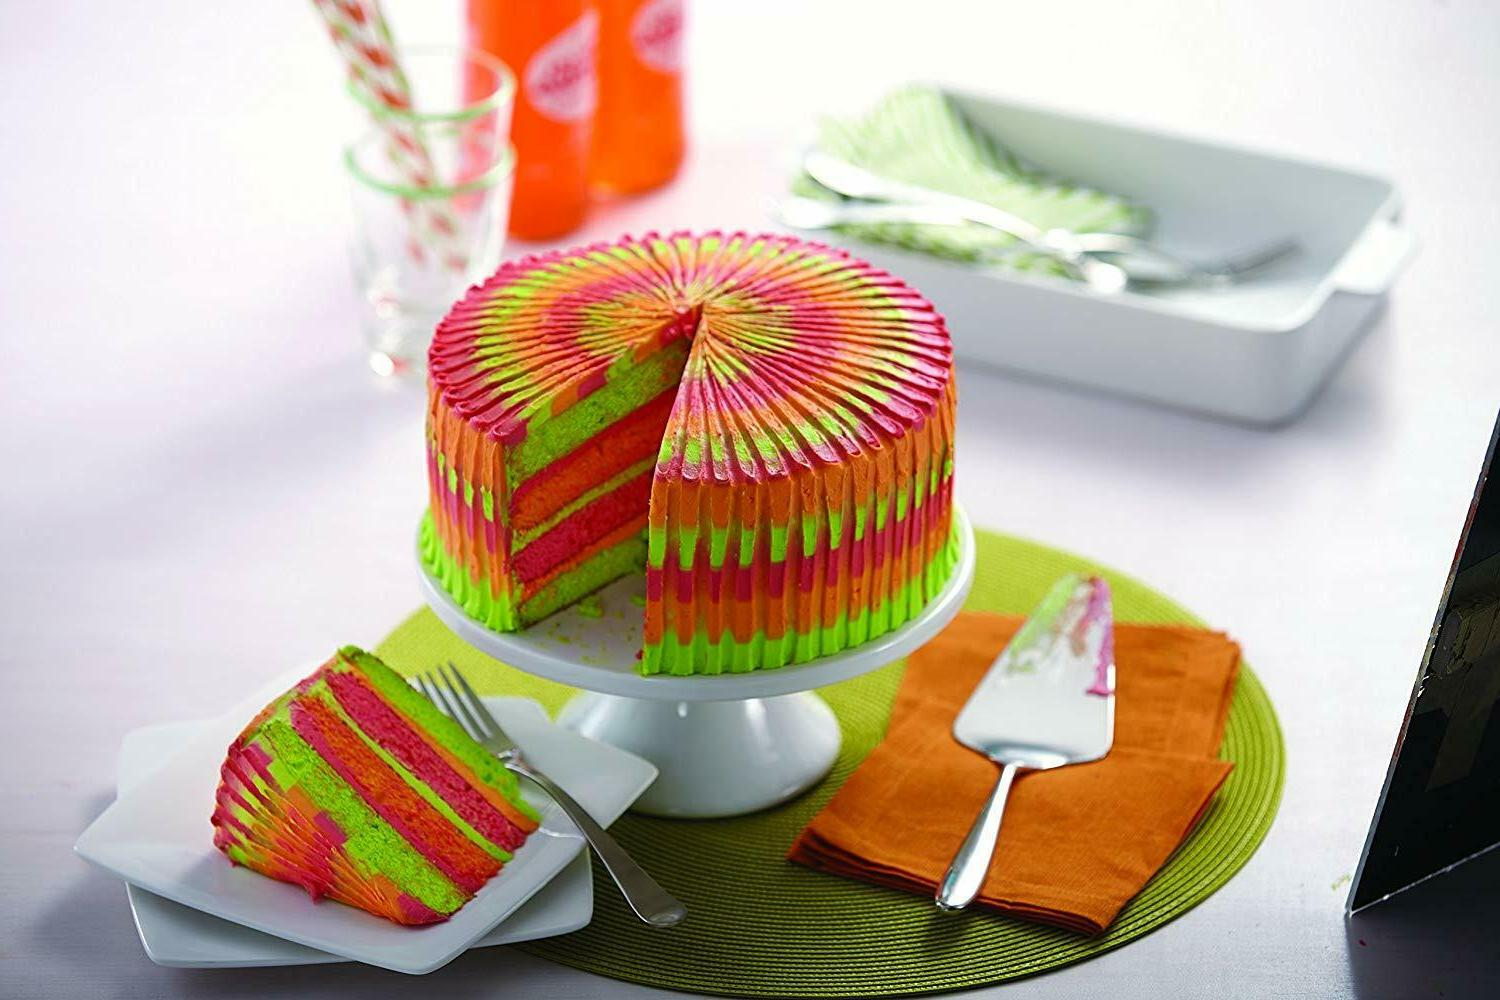 Wilton Easy Layers! Round Layer Cake Set 4-Piece 2105-0188 70896121882